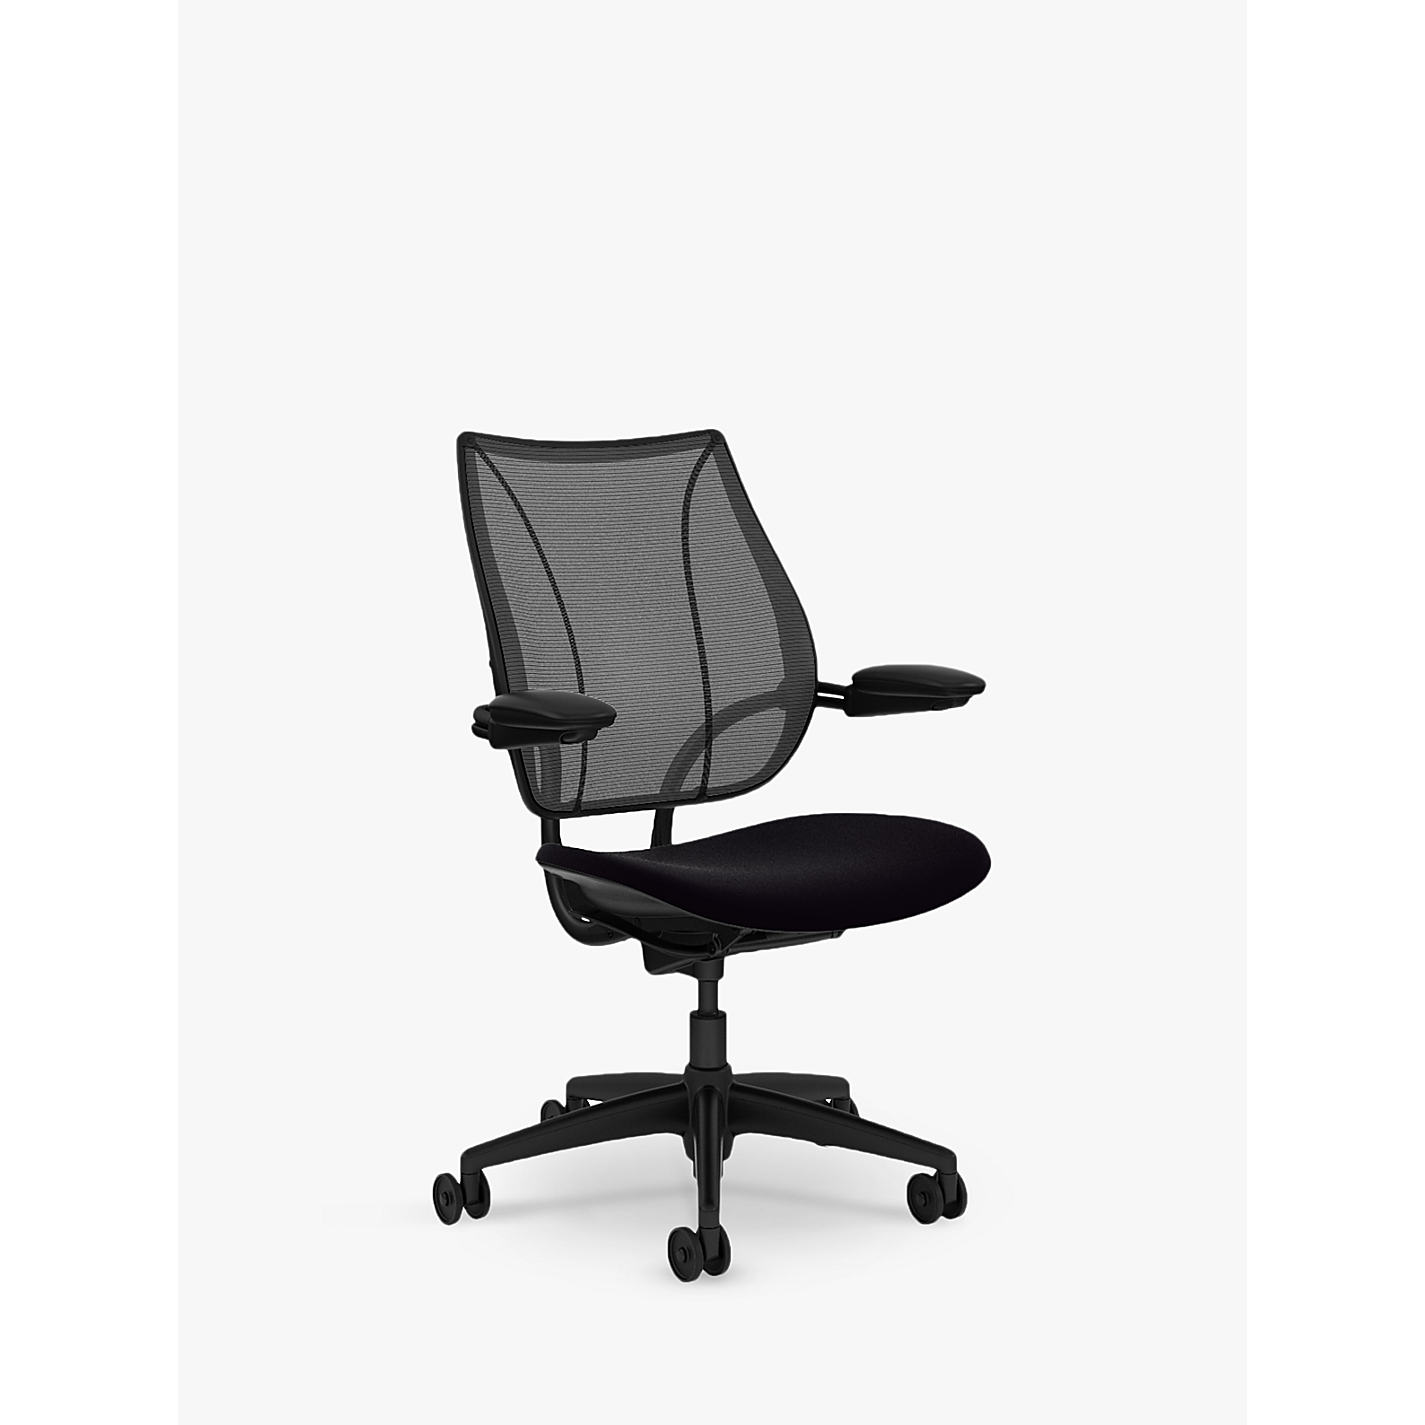 Humanscale Chair Price Buy Humanscale Liberty Office